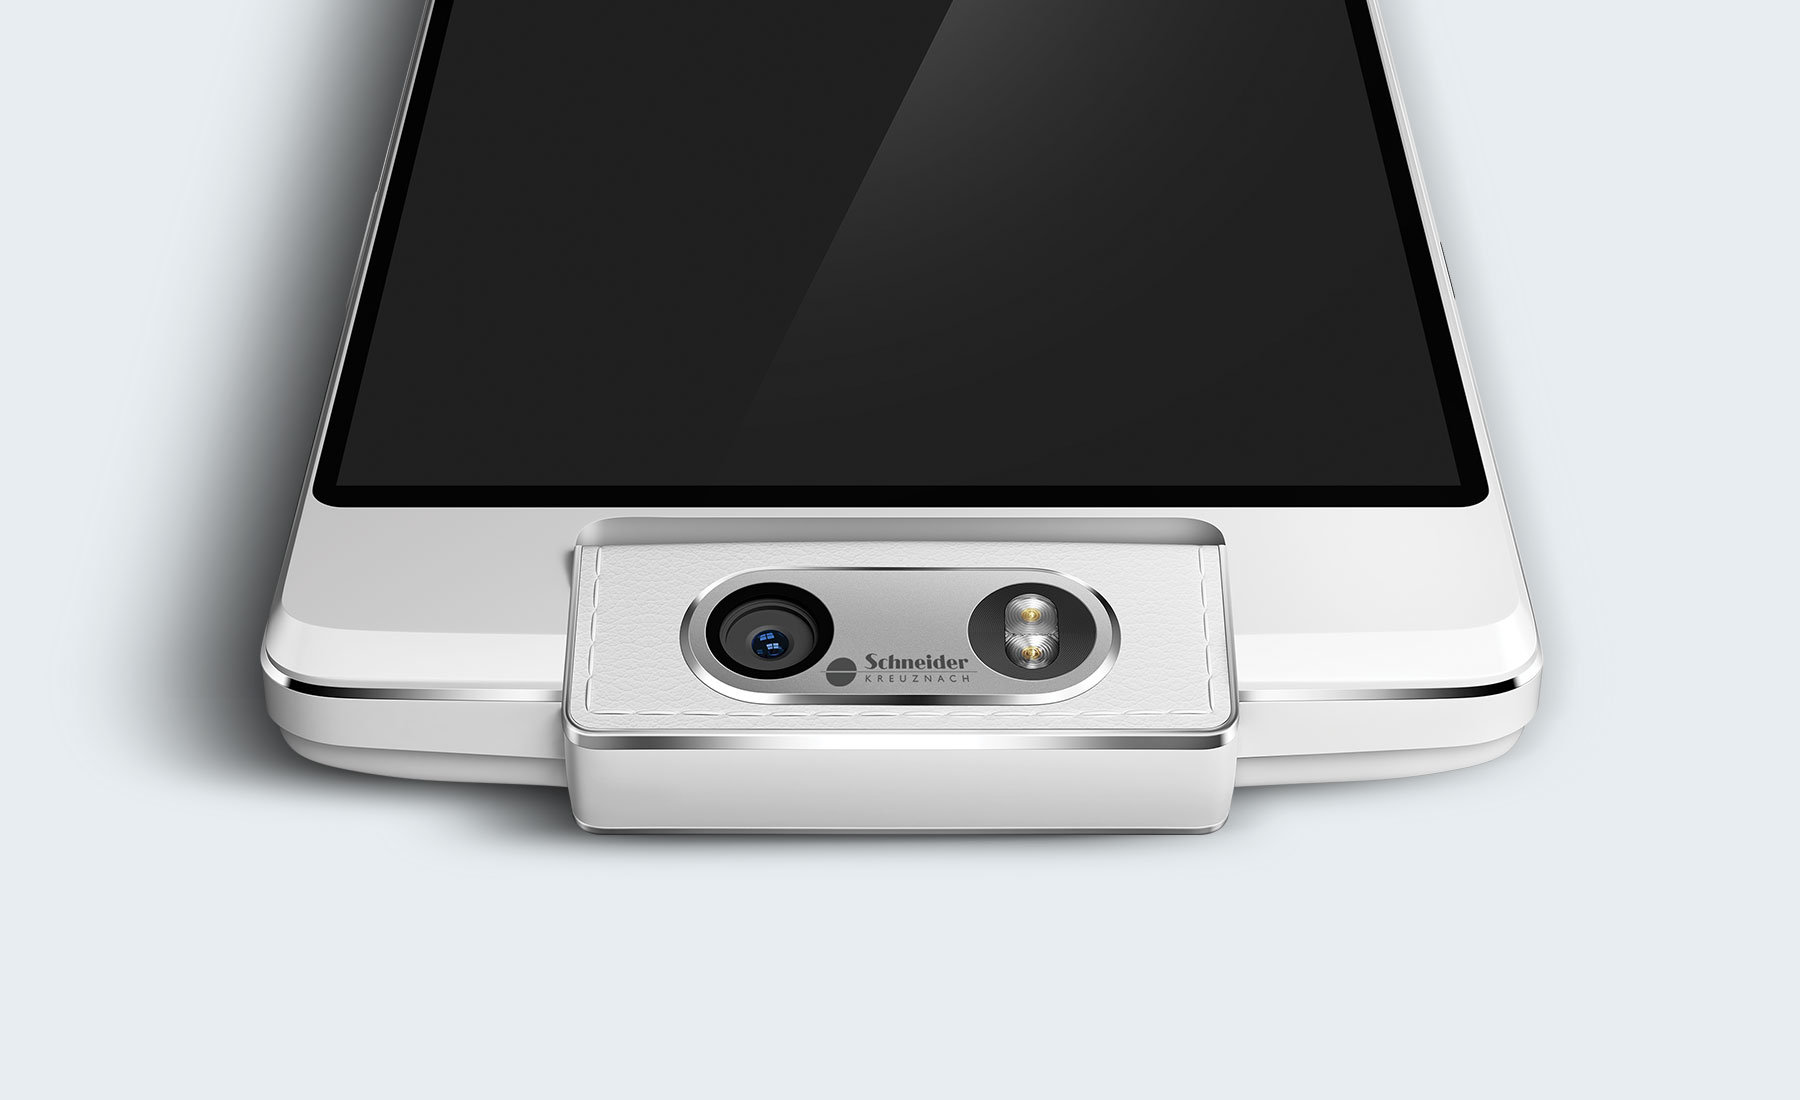 OPPO N3  Your Digital Memory<br />Your Window to the World